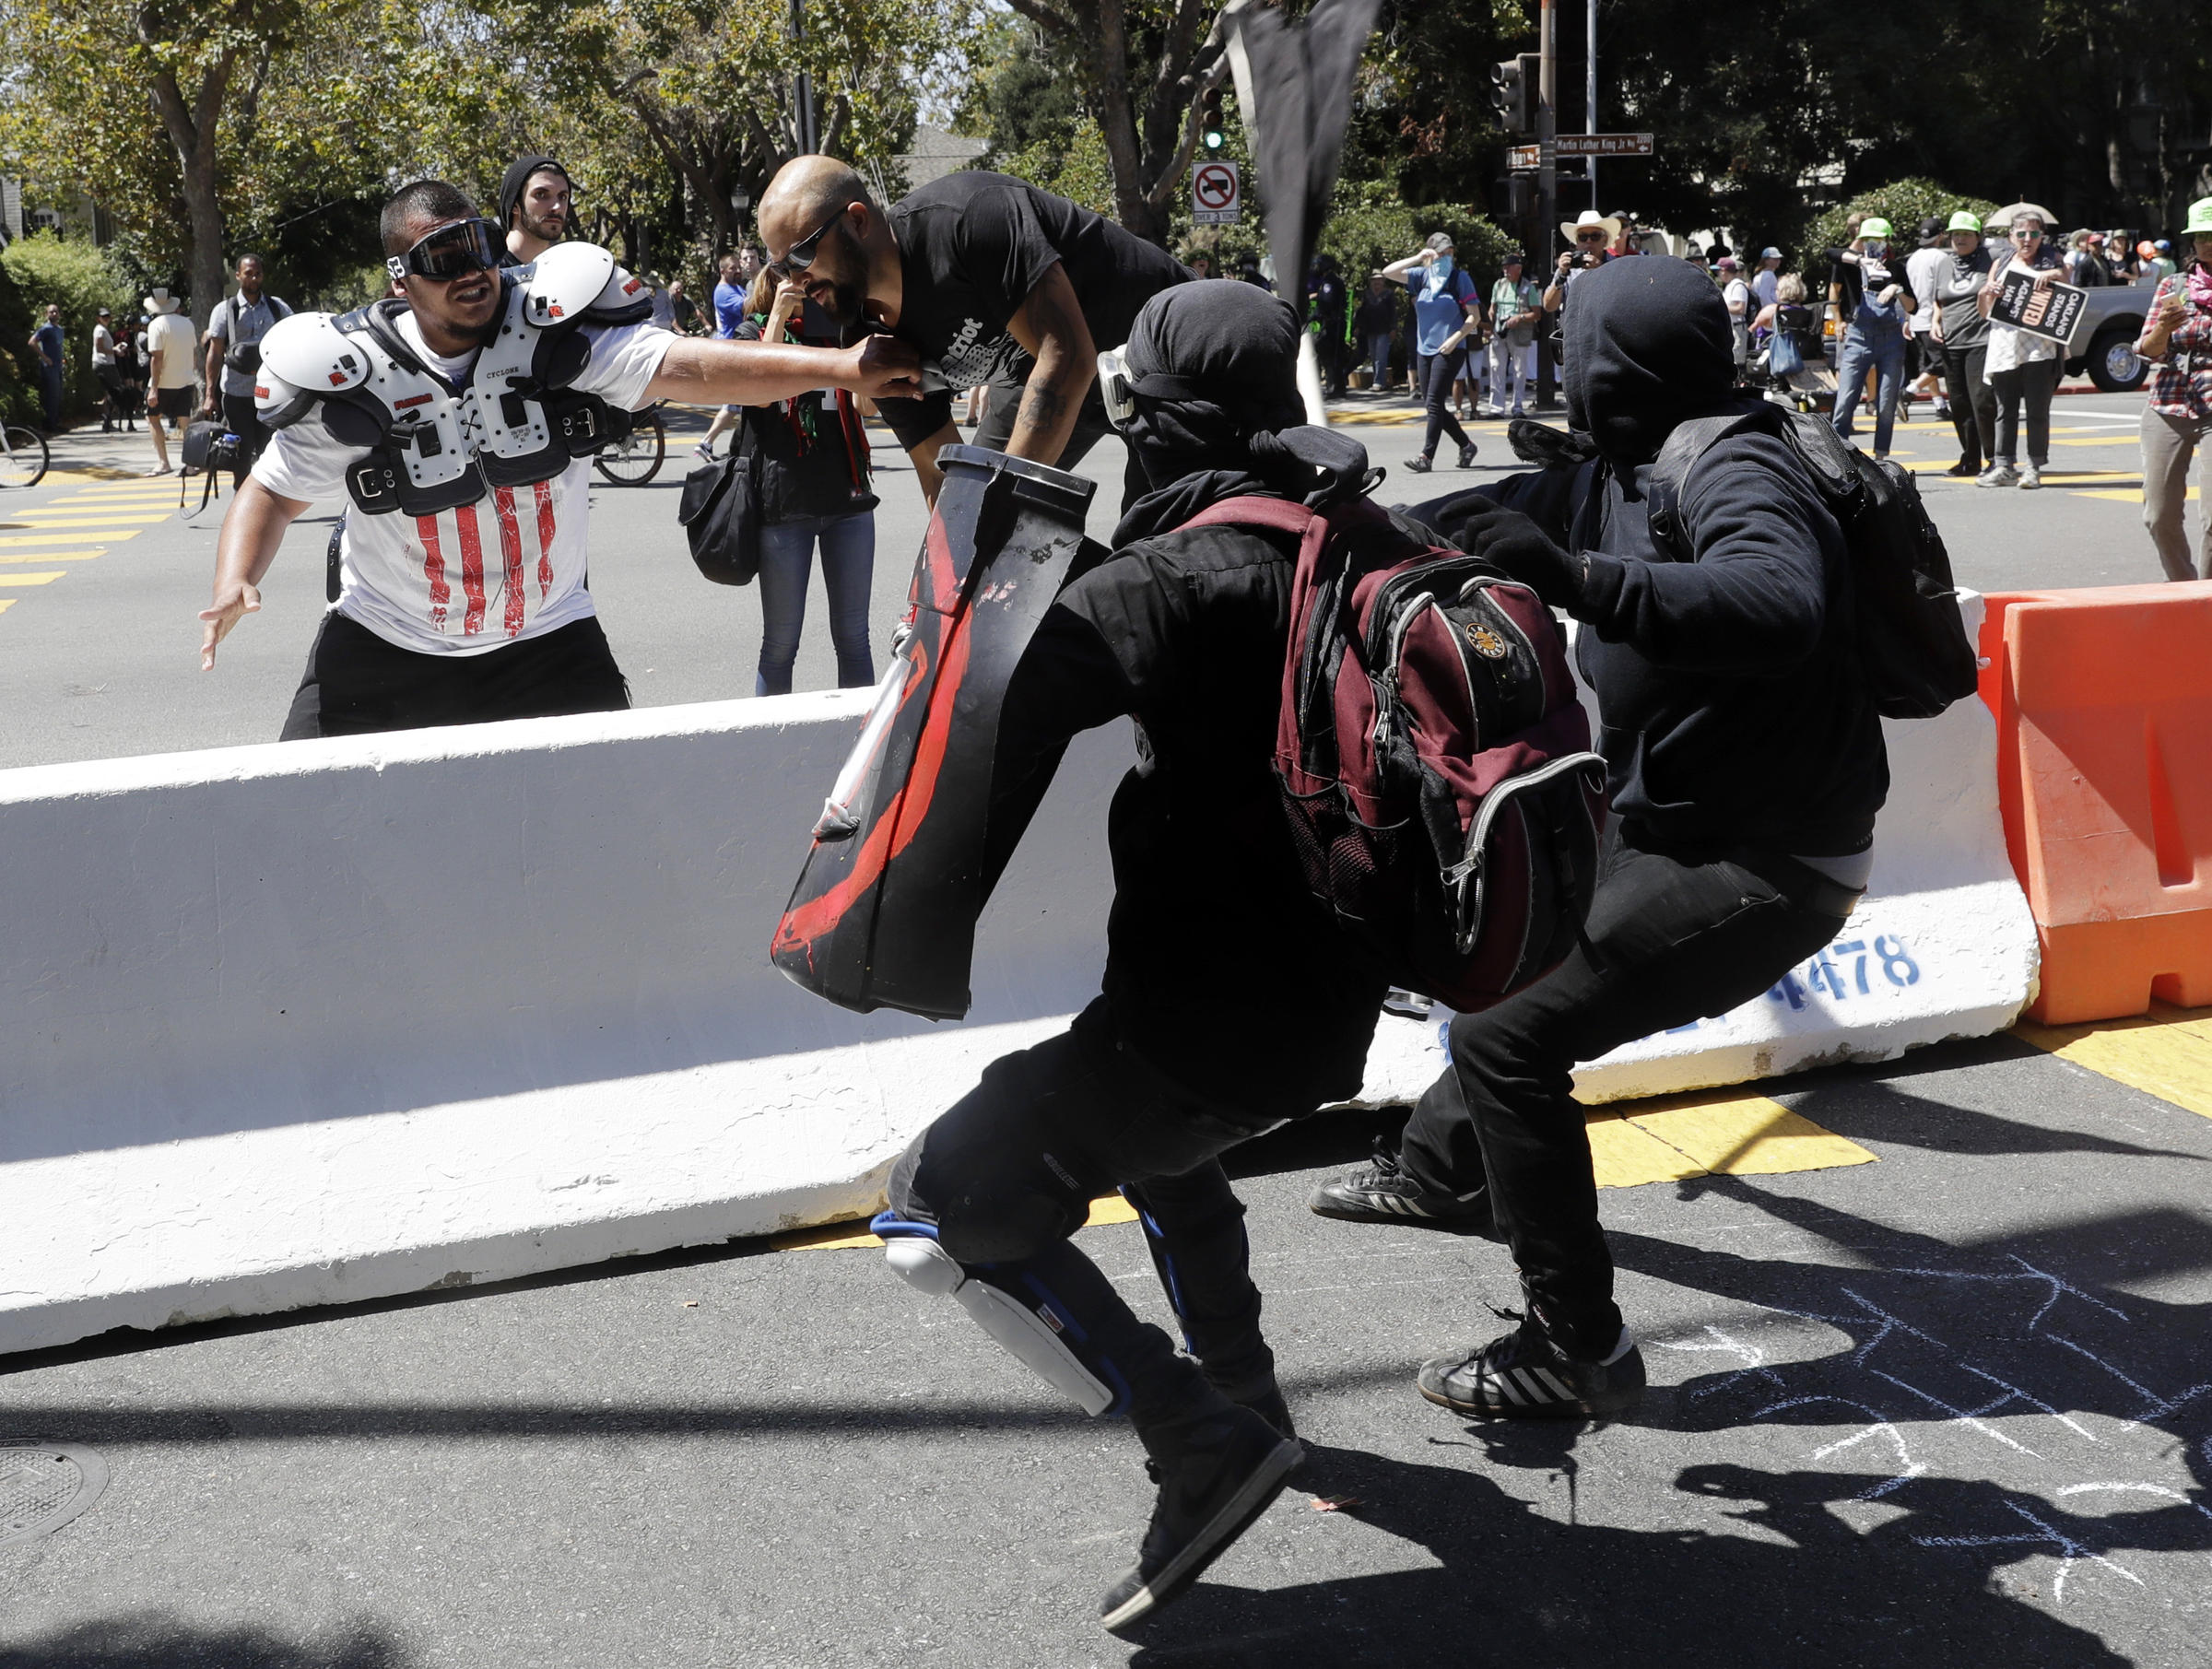 Bay area rallies canceled amid safety concerns